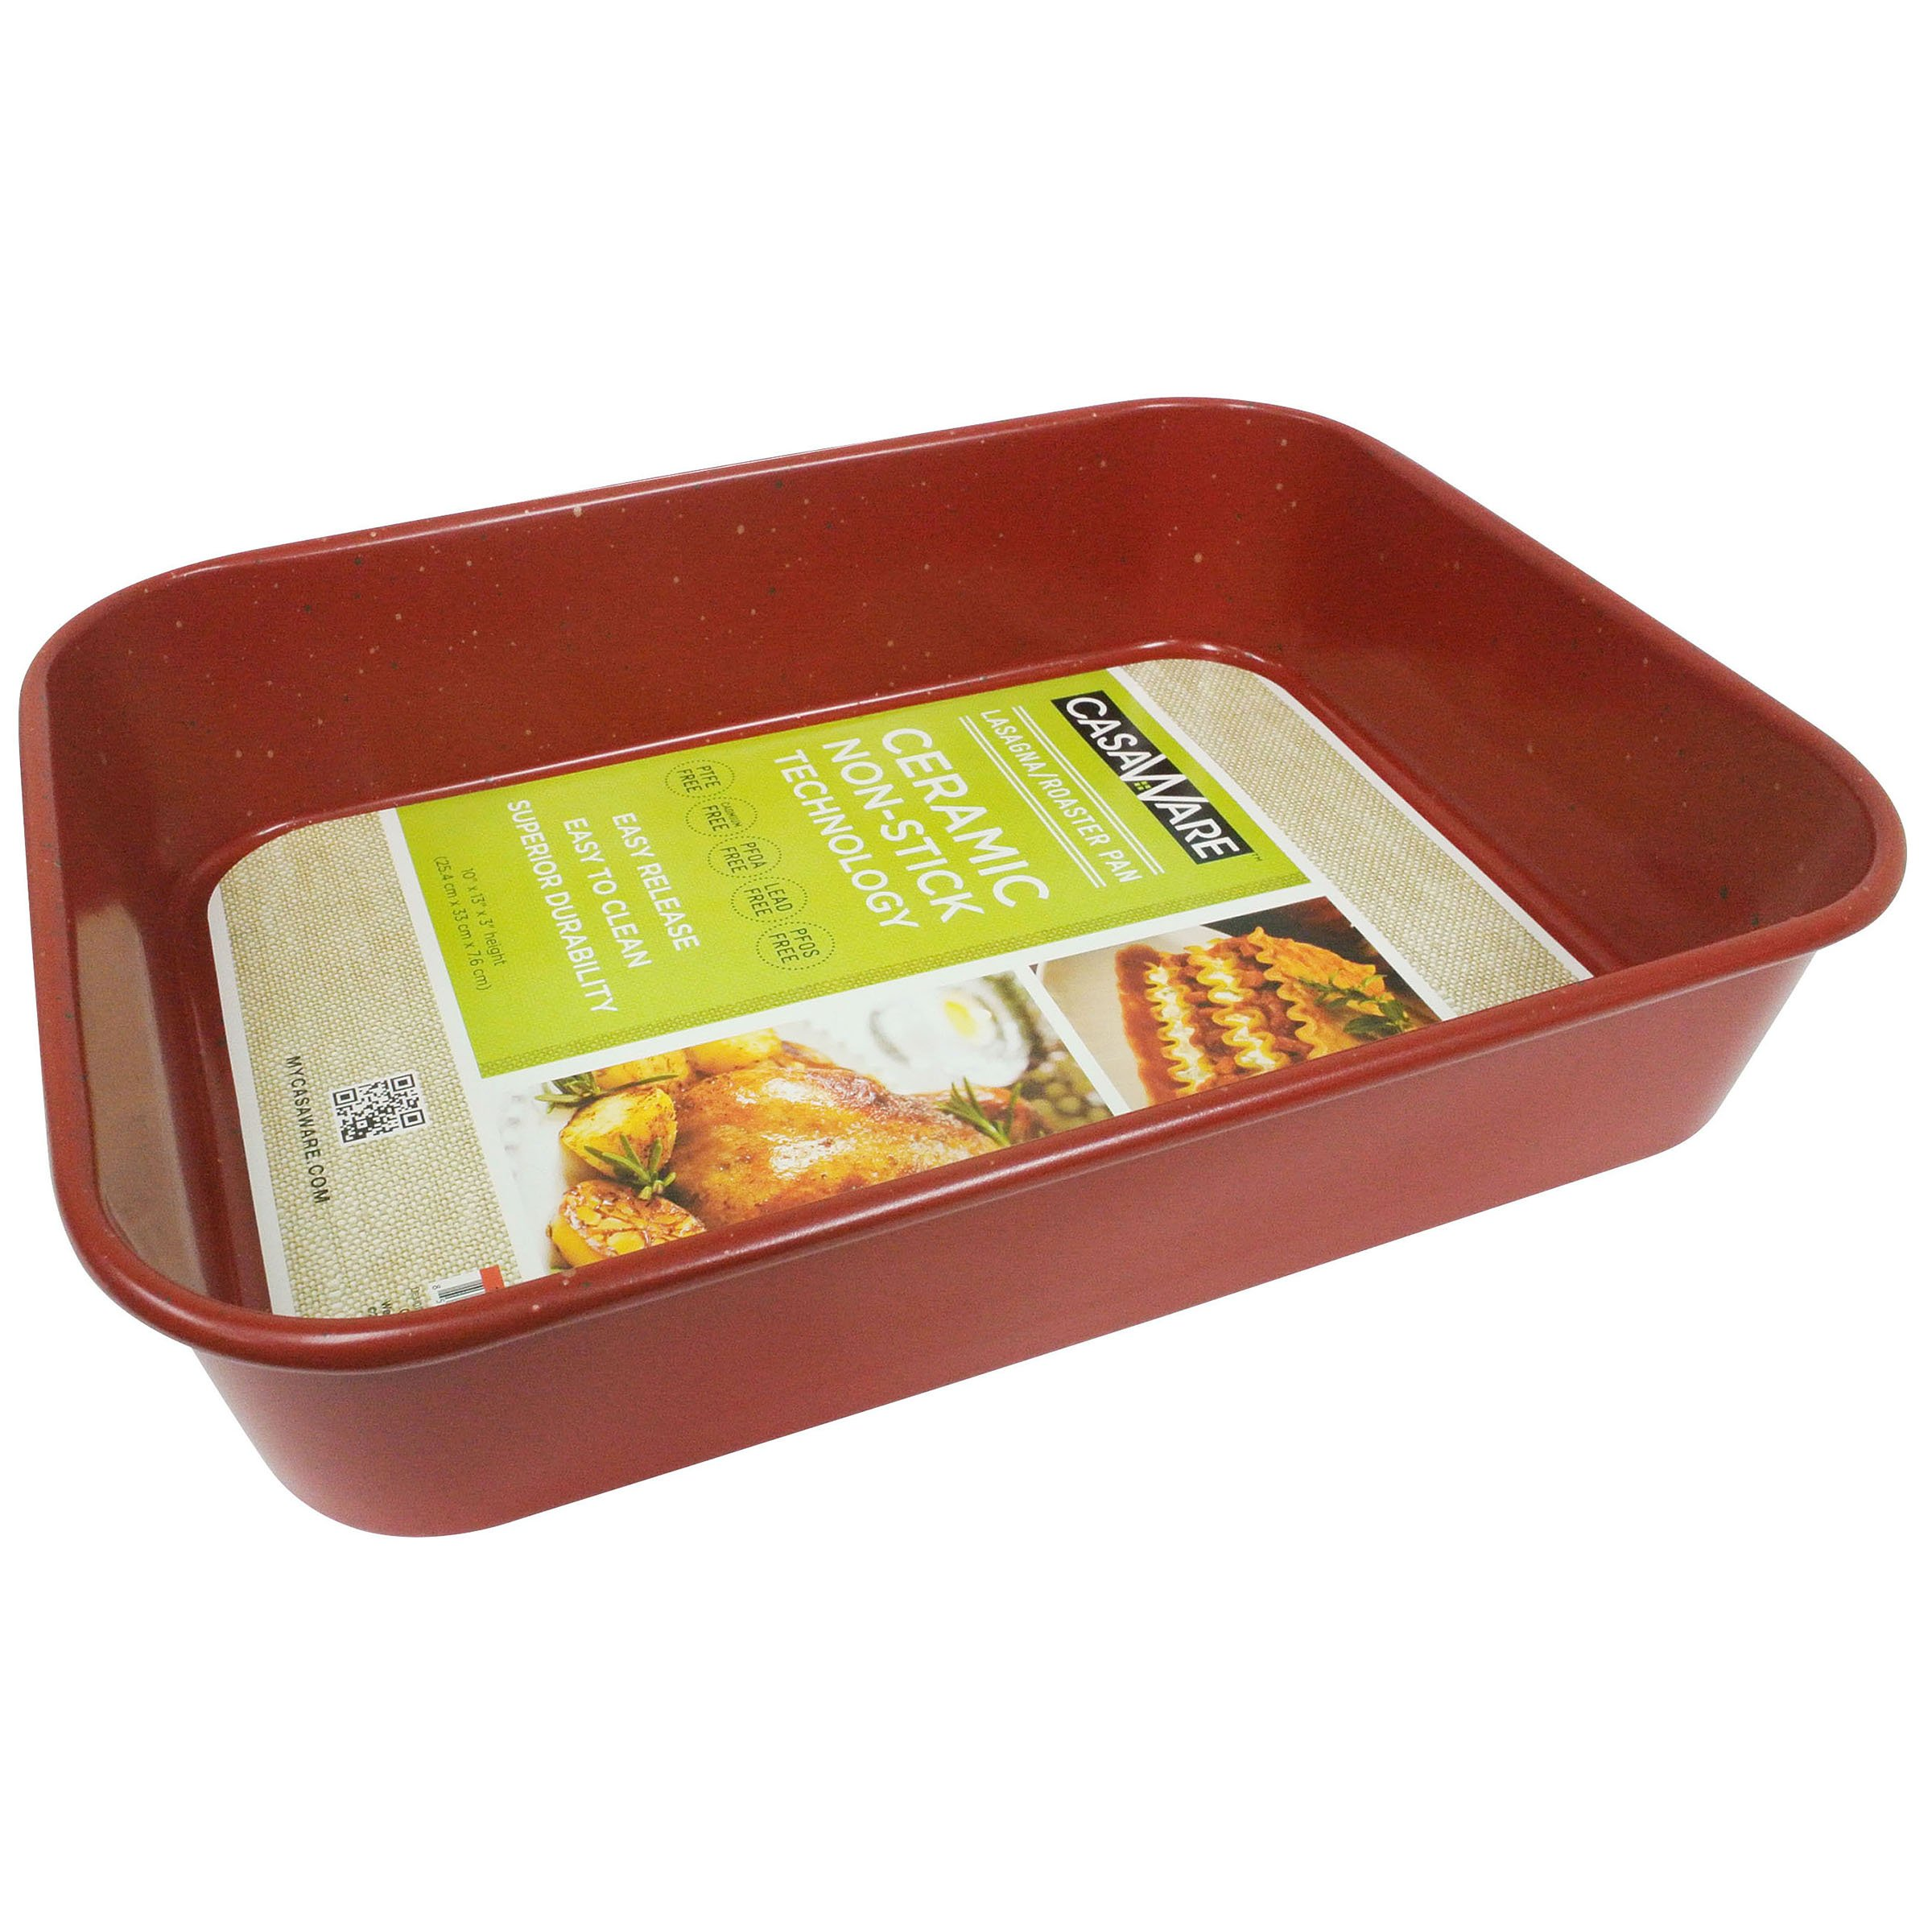 casaWare Ceramic Coated NonStick Lasagna/Roaster Pan 13 x 10 x 3-Inch (Red Granite) by casaWare